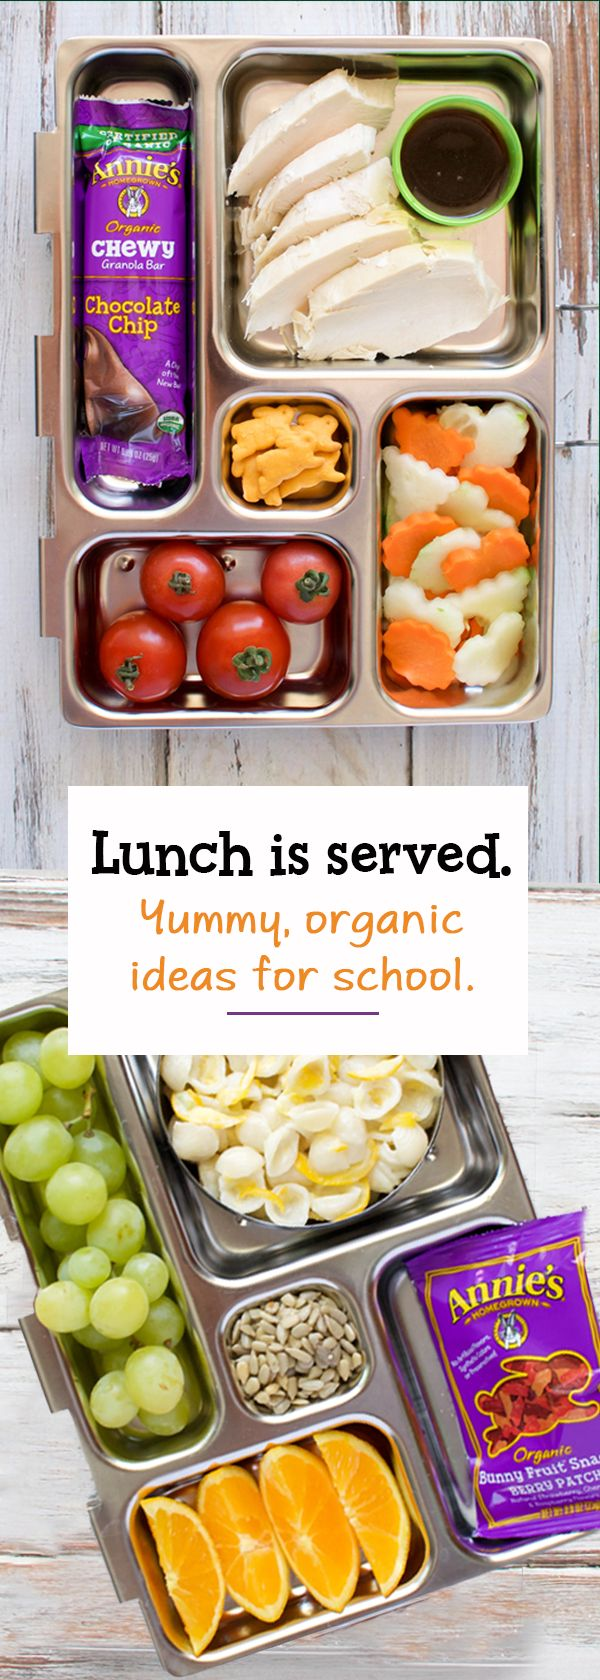 Routine to school = return to the lunch packing routine! Return to school with delicious Annie's snacks, perfect for your kid's lunch box. From berry delicious fruit snacks to chewy, chocolatey and perfectly portable organic granola bars, set the lunch bar high with organic snacks from